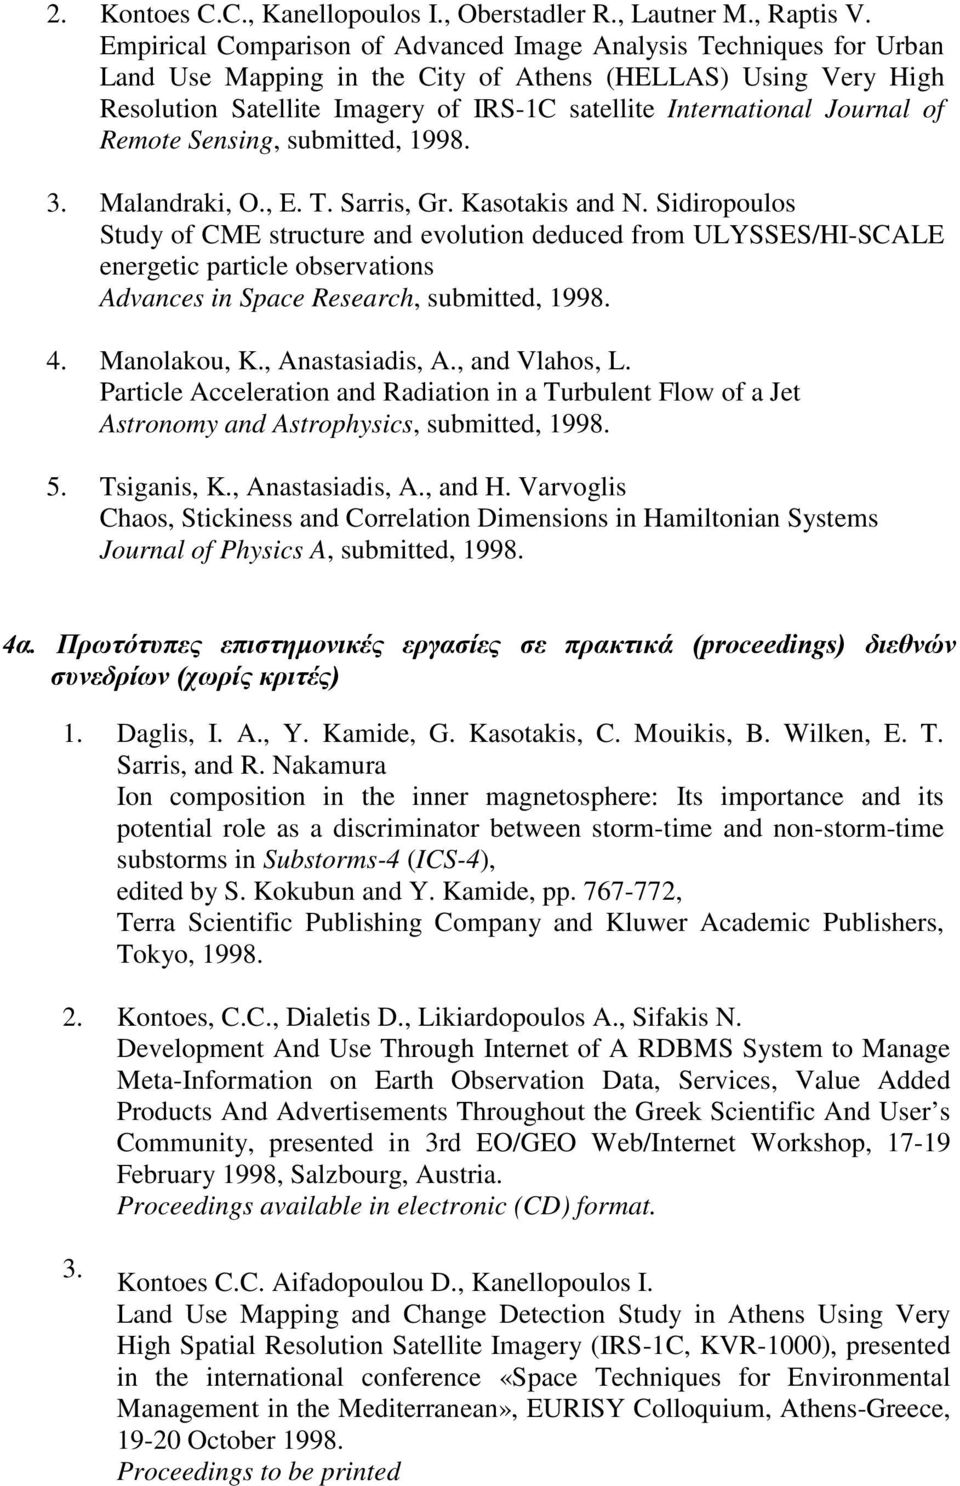 Journal of Remote Sensing, submitted, 1998. 3. Malandraki, O., E. T. Sarris, Gr. Kasotakis and N.